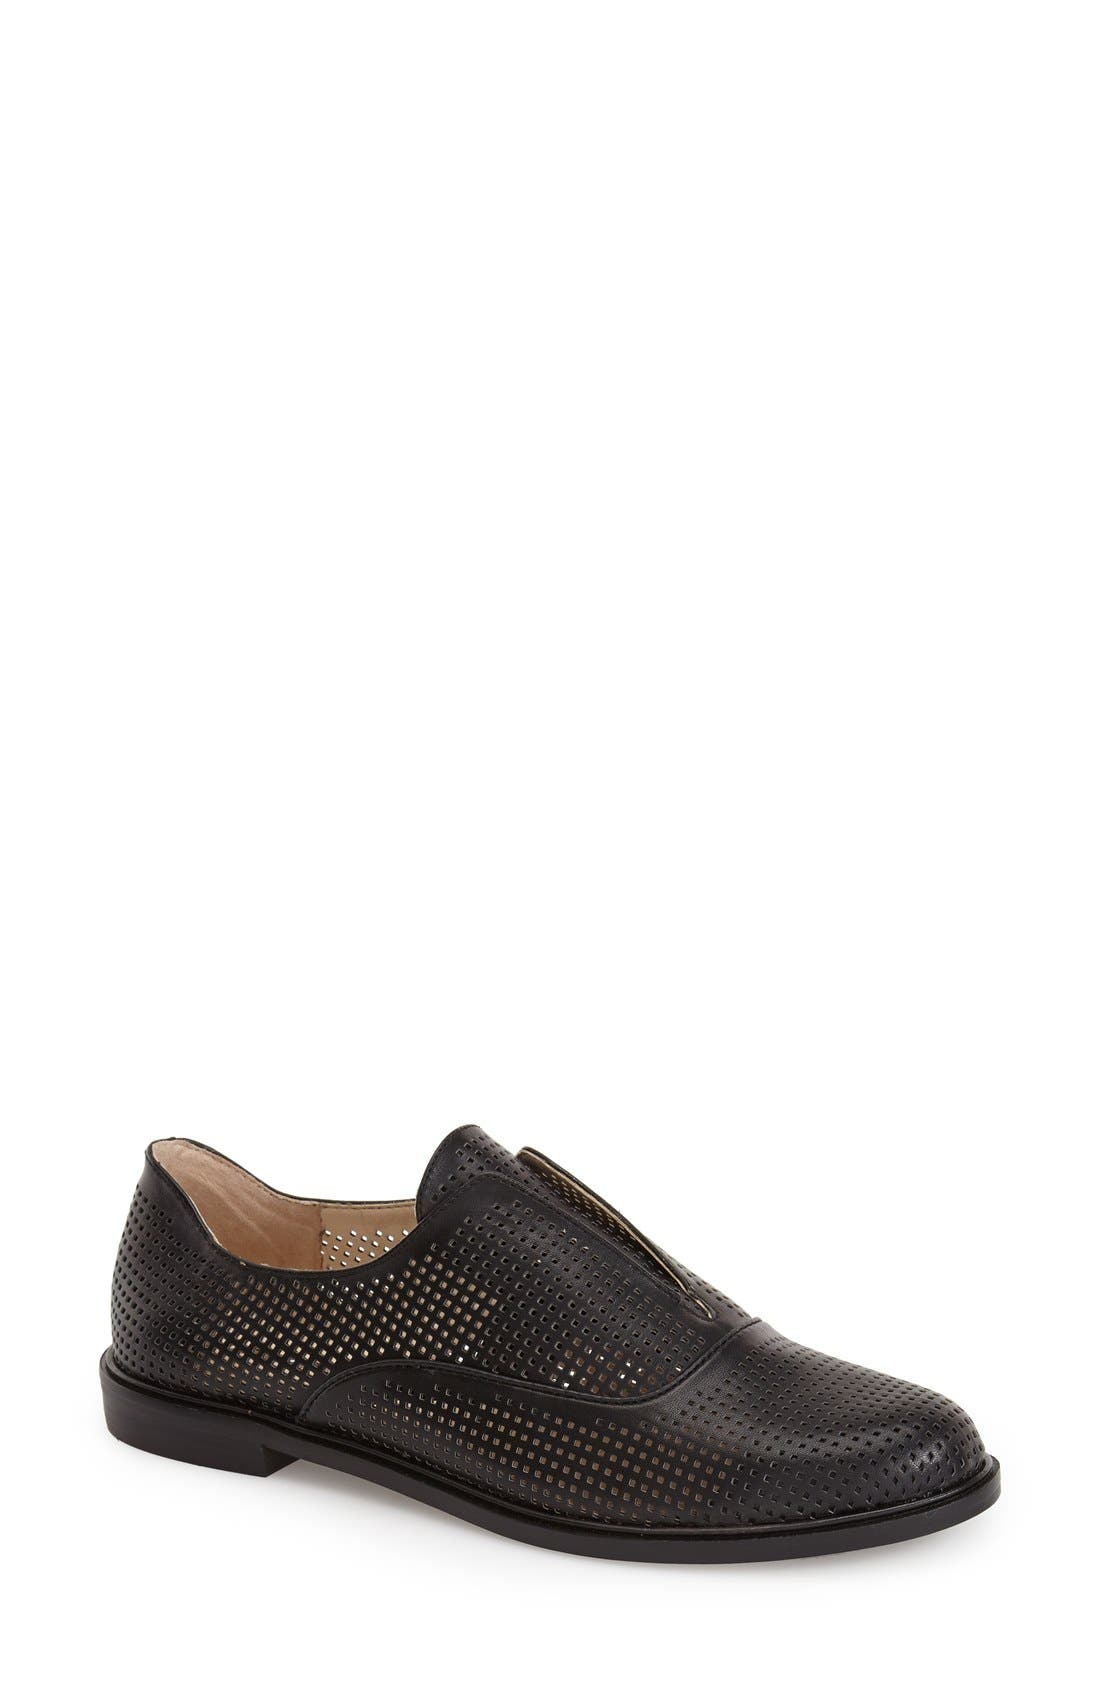 BCBGENERATION,                             'Brisk B' Perforated Oxford,                             Main thumbnail 1, color,                             001